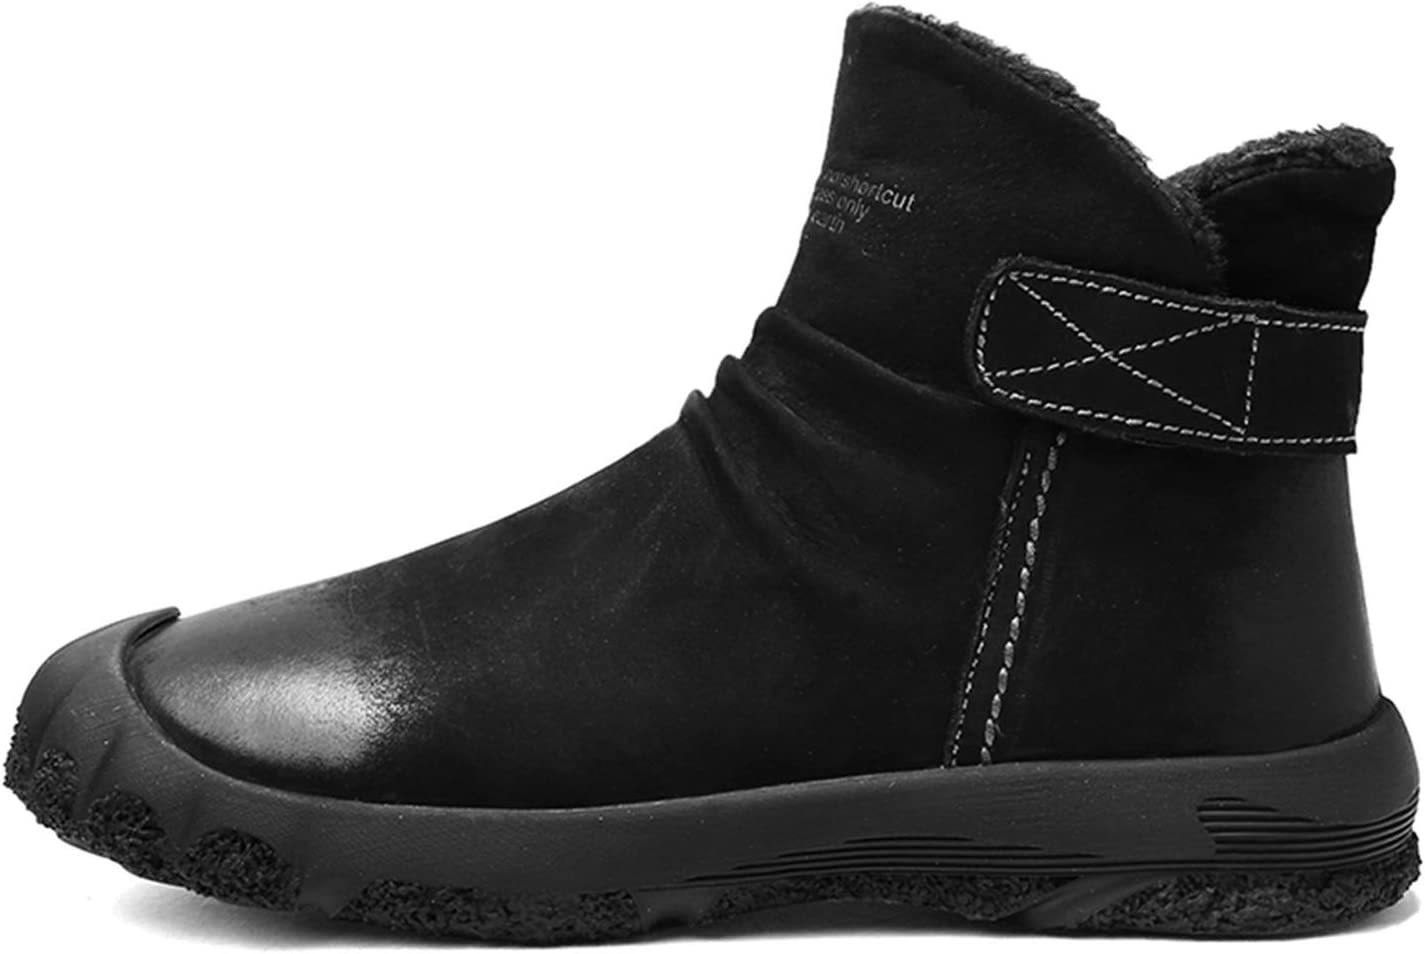 Men's Hiking Indianapolis Mall Boots Round Toe Leather Jacksonville Mall high-top Synthetic Oversho